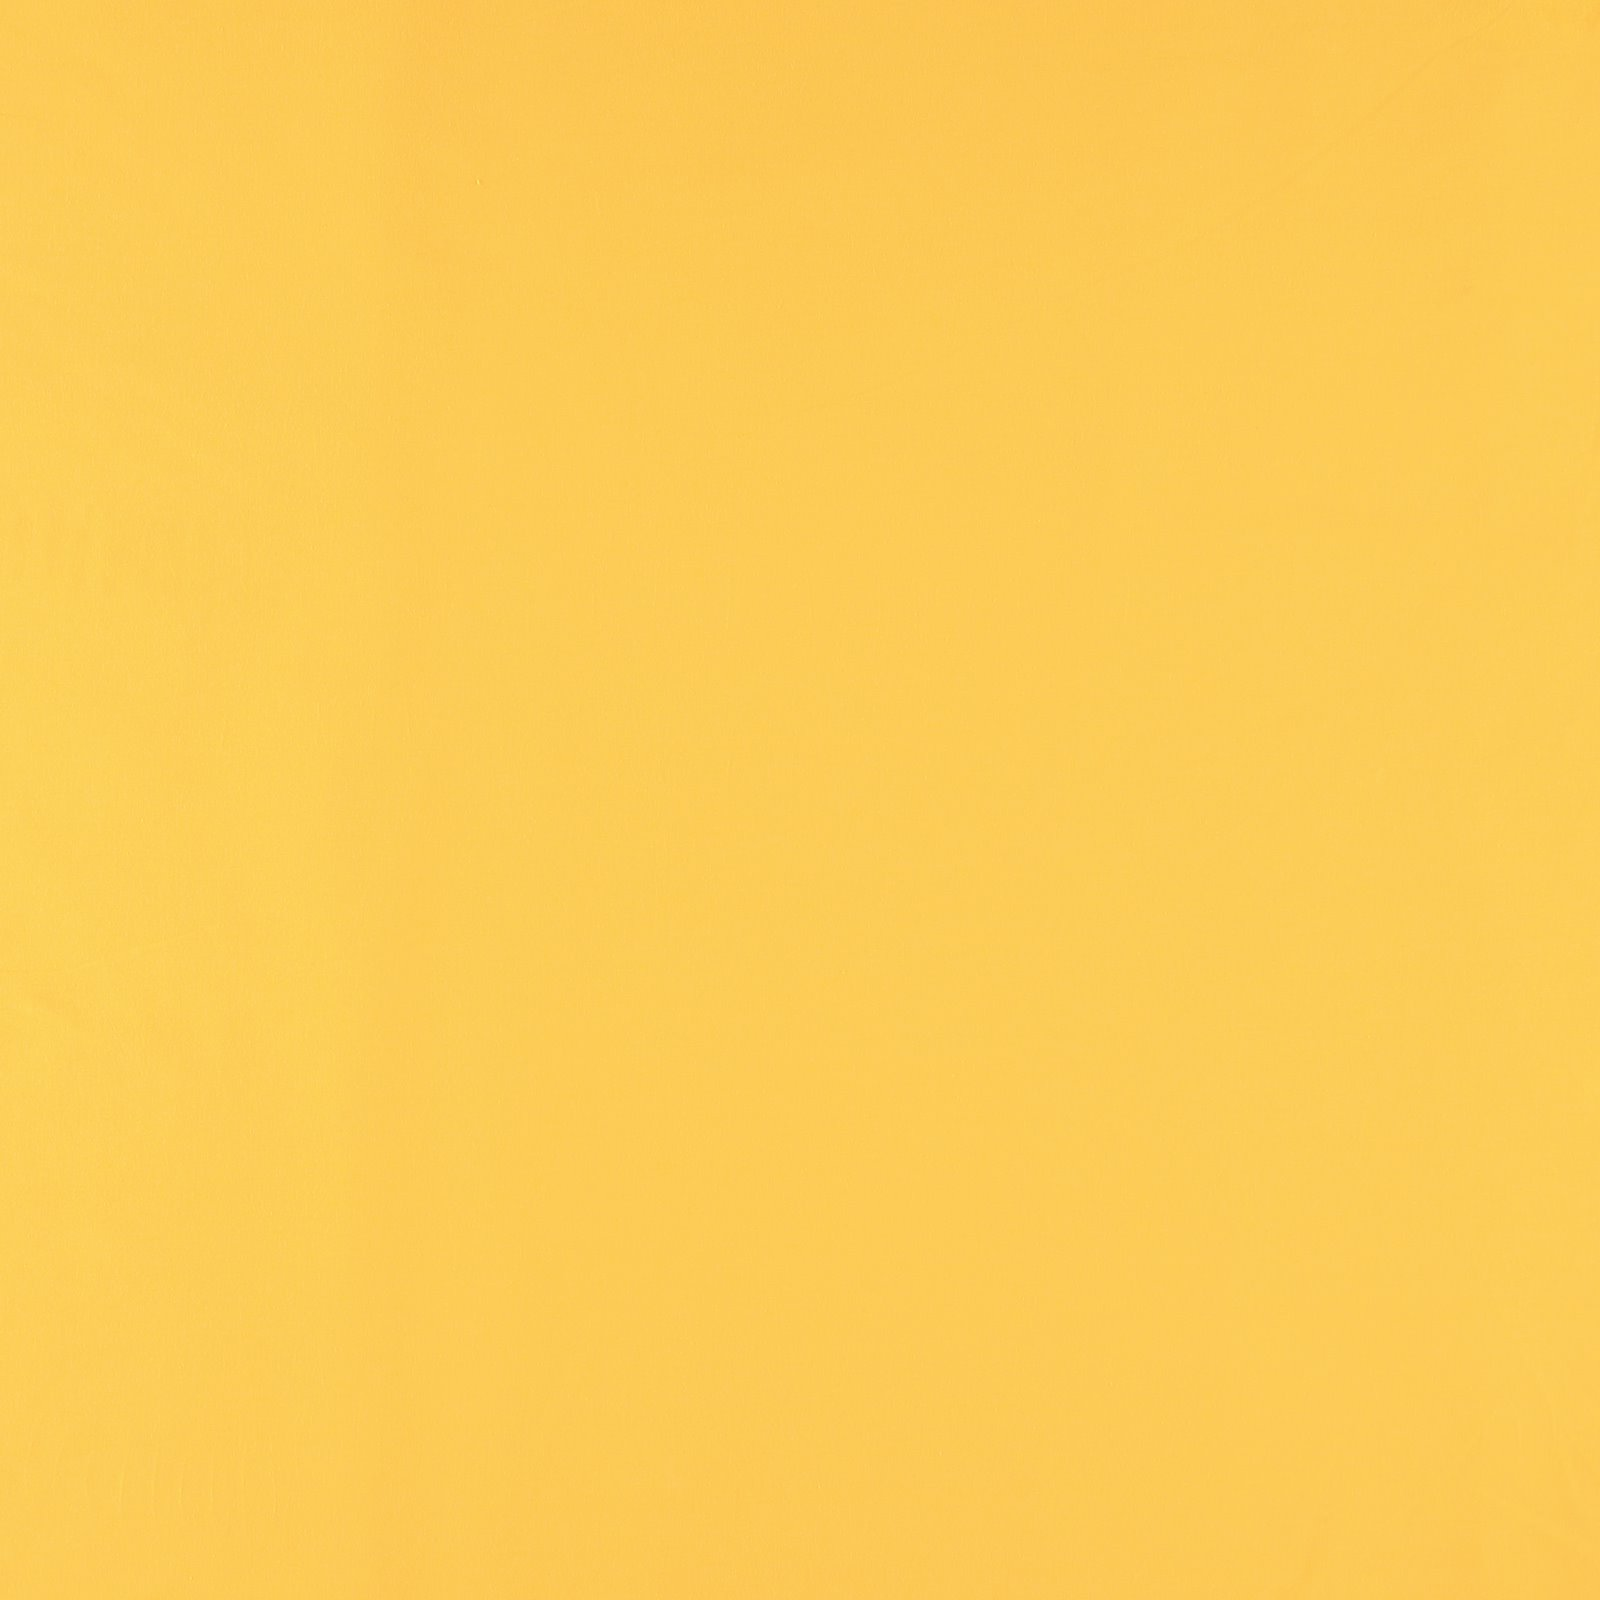 Organic stretch jersey light yellow 272651_pack_solid